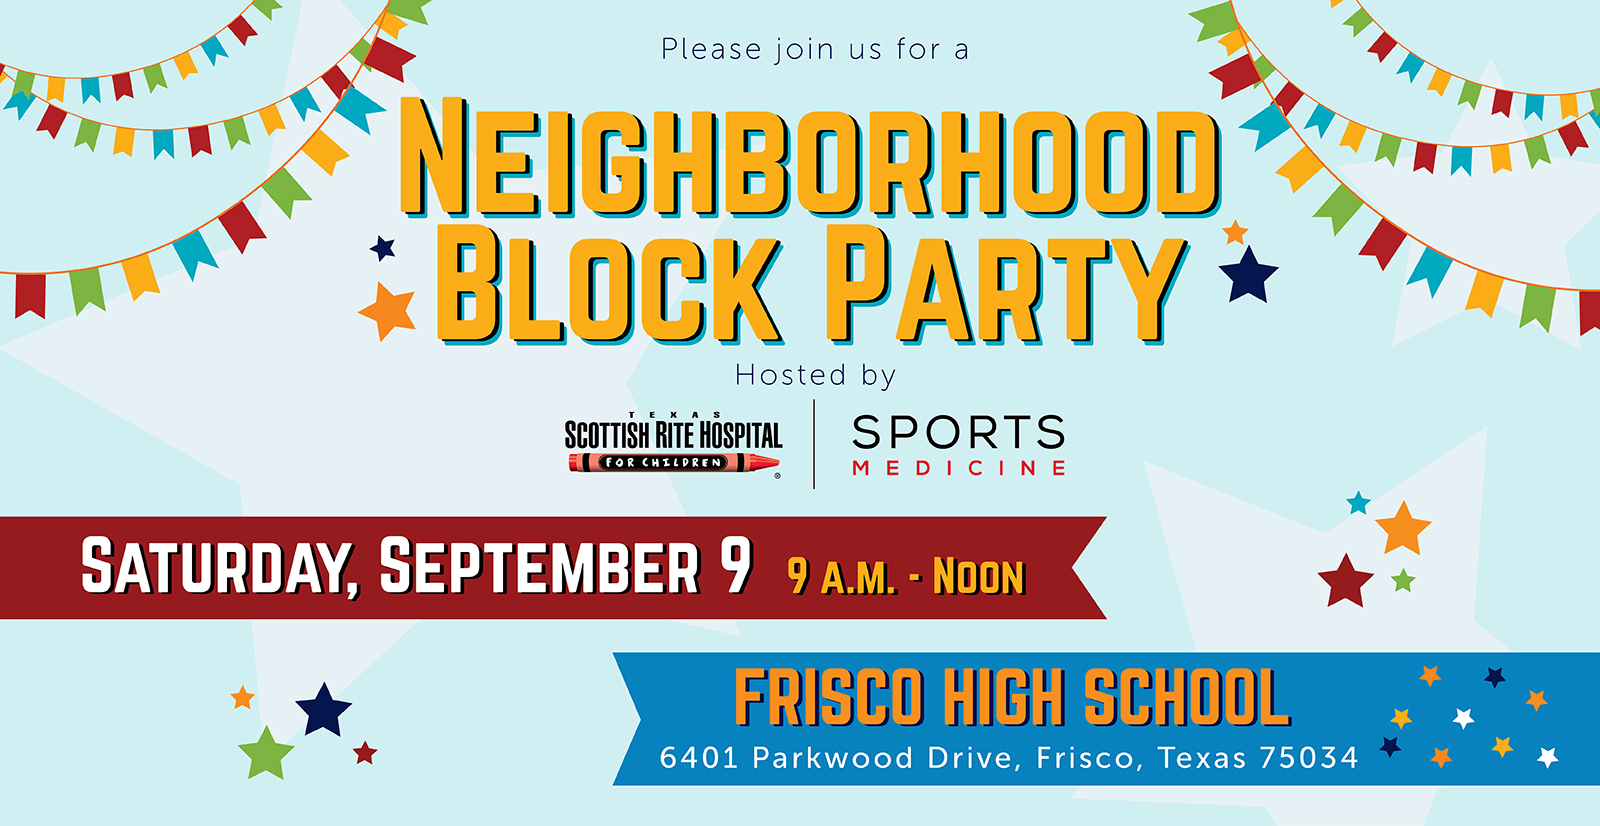 Neighborhood Block PartyOn Saturday, September 9, TSRHC will be hosting a Neighborhood Block Party in Frisco to meet our new neighbors, as well as give them the chance to meet us and learn more about